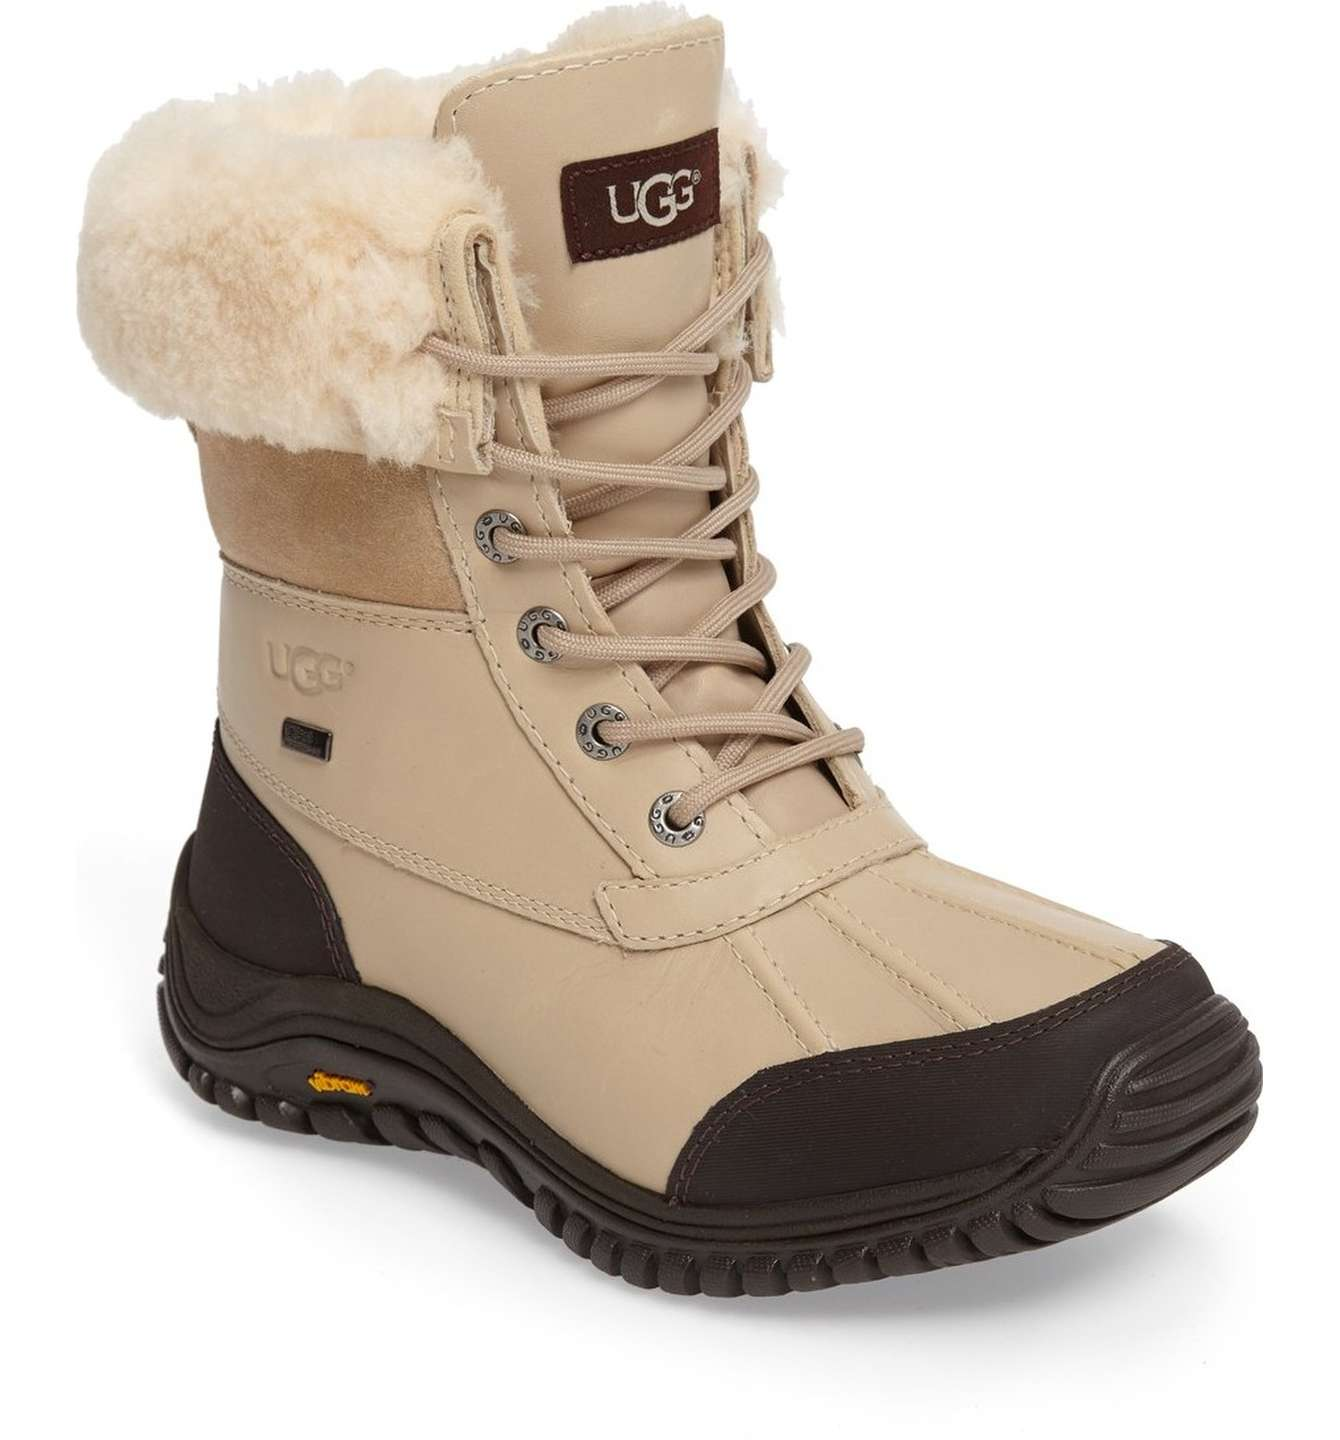 Ugg waterproof boot